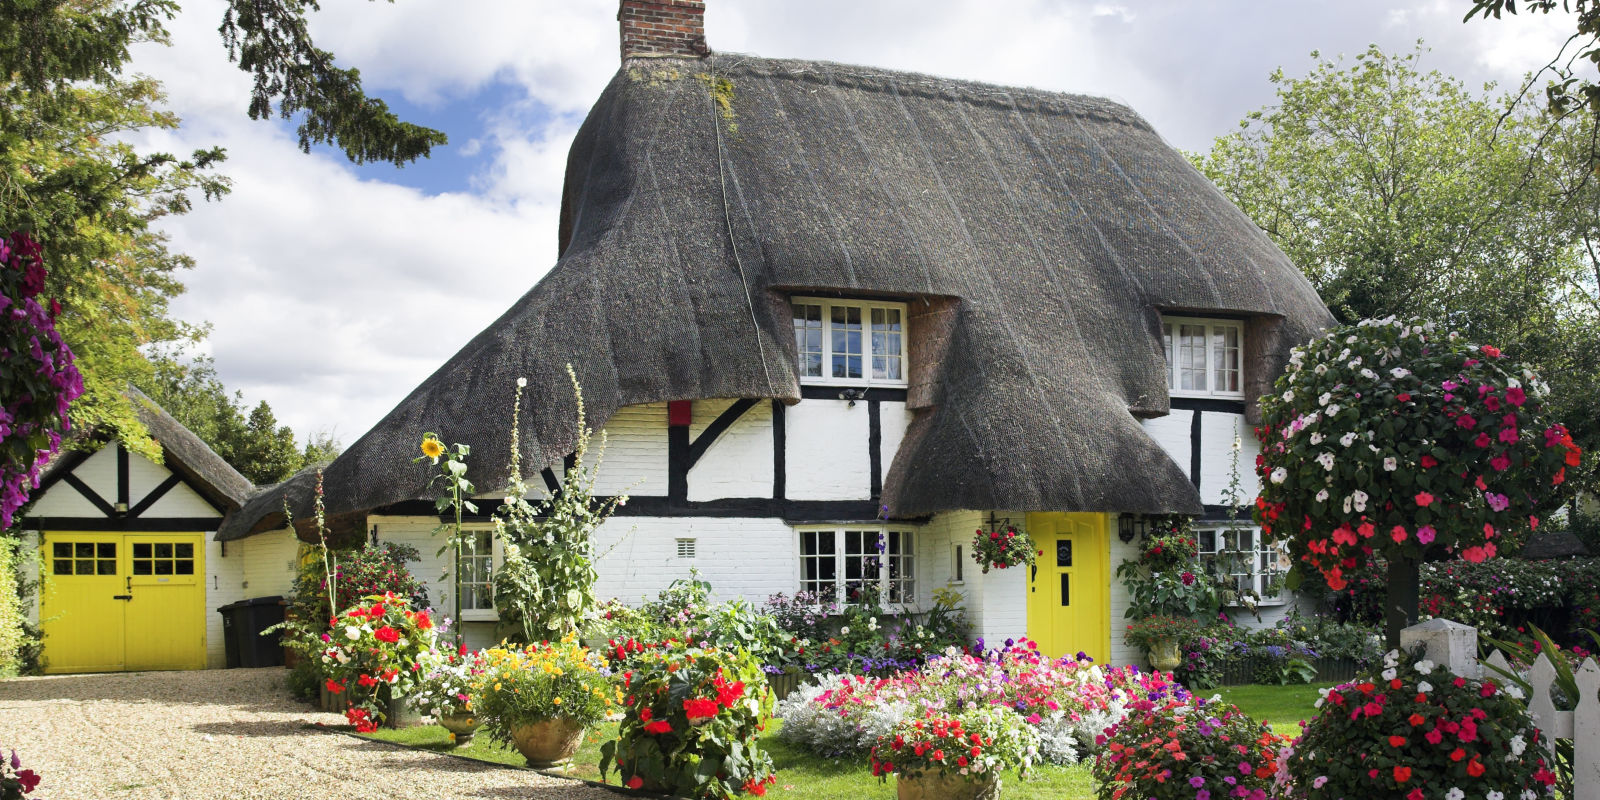 Englische Cottages 11 Photos Of English Country Cottages That Make Us Want